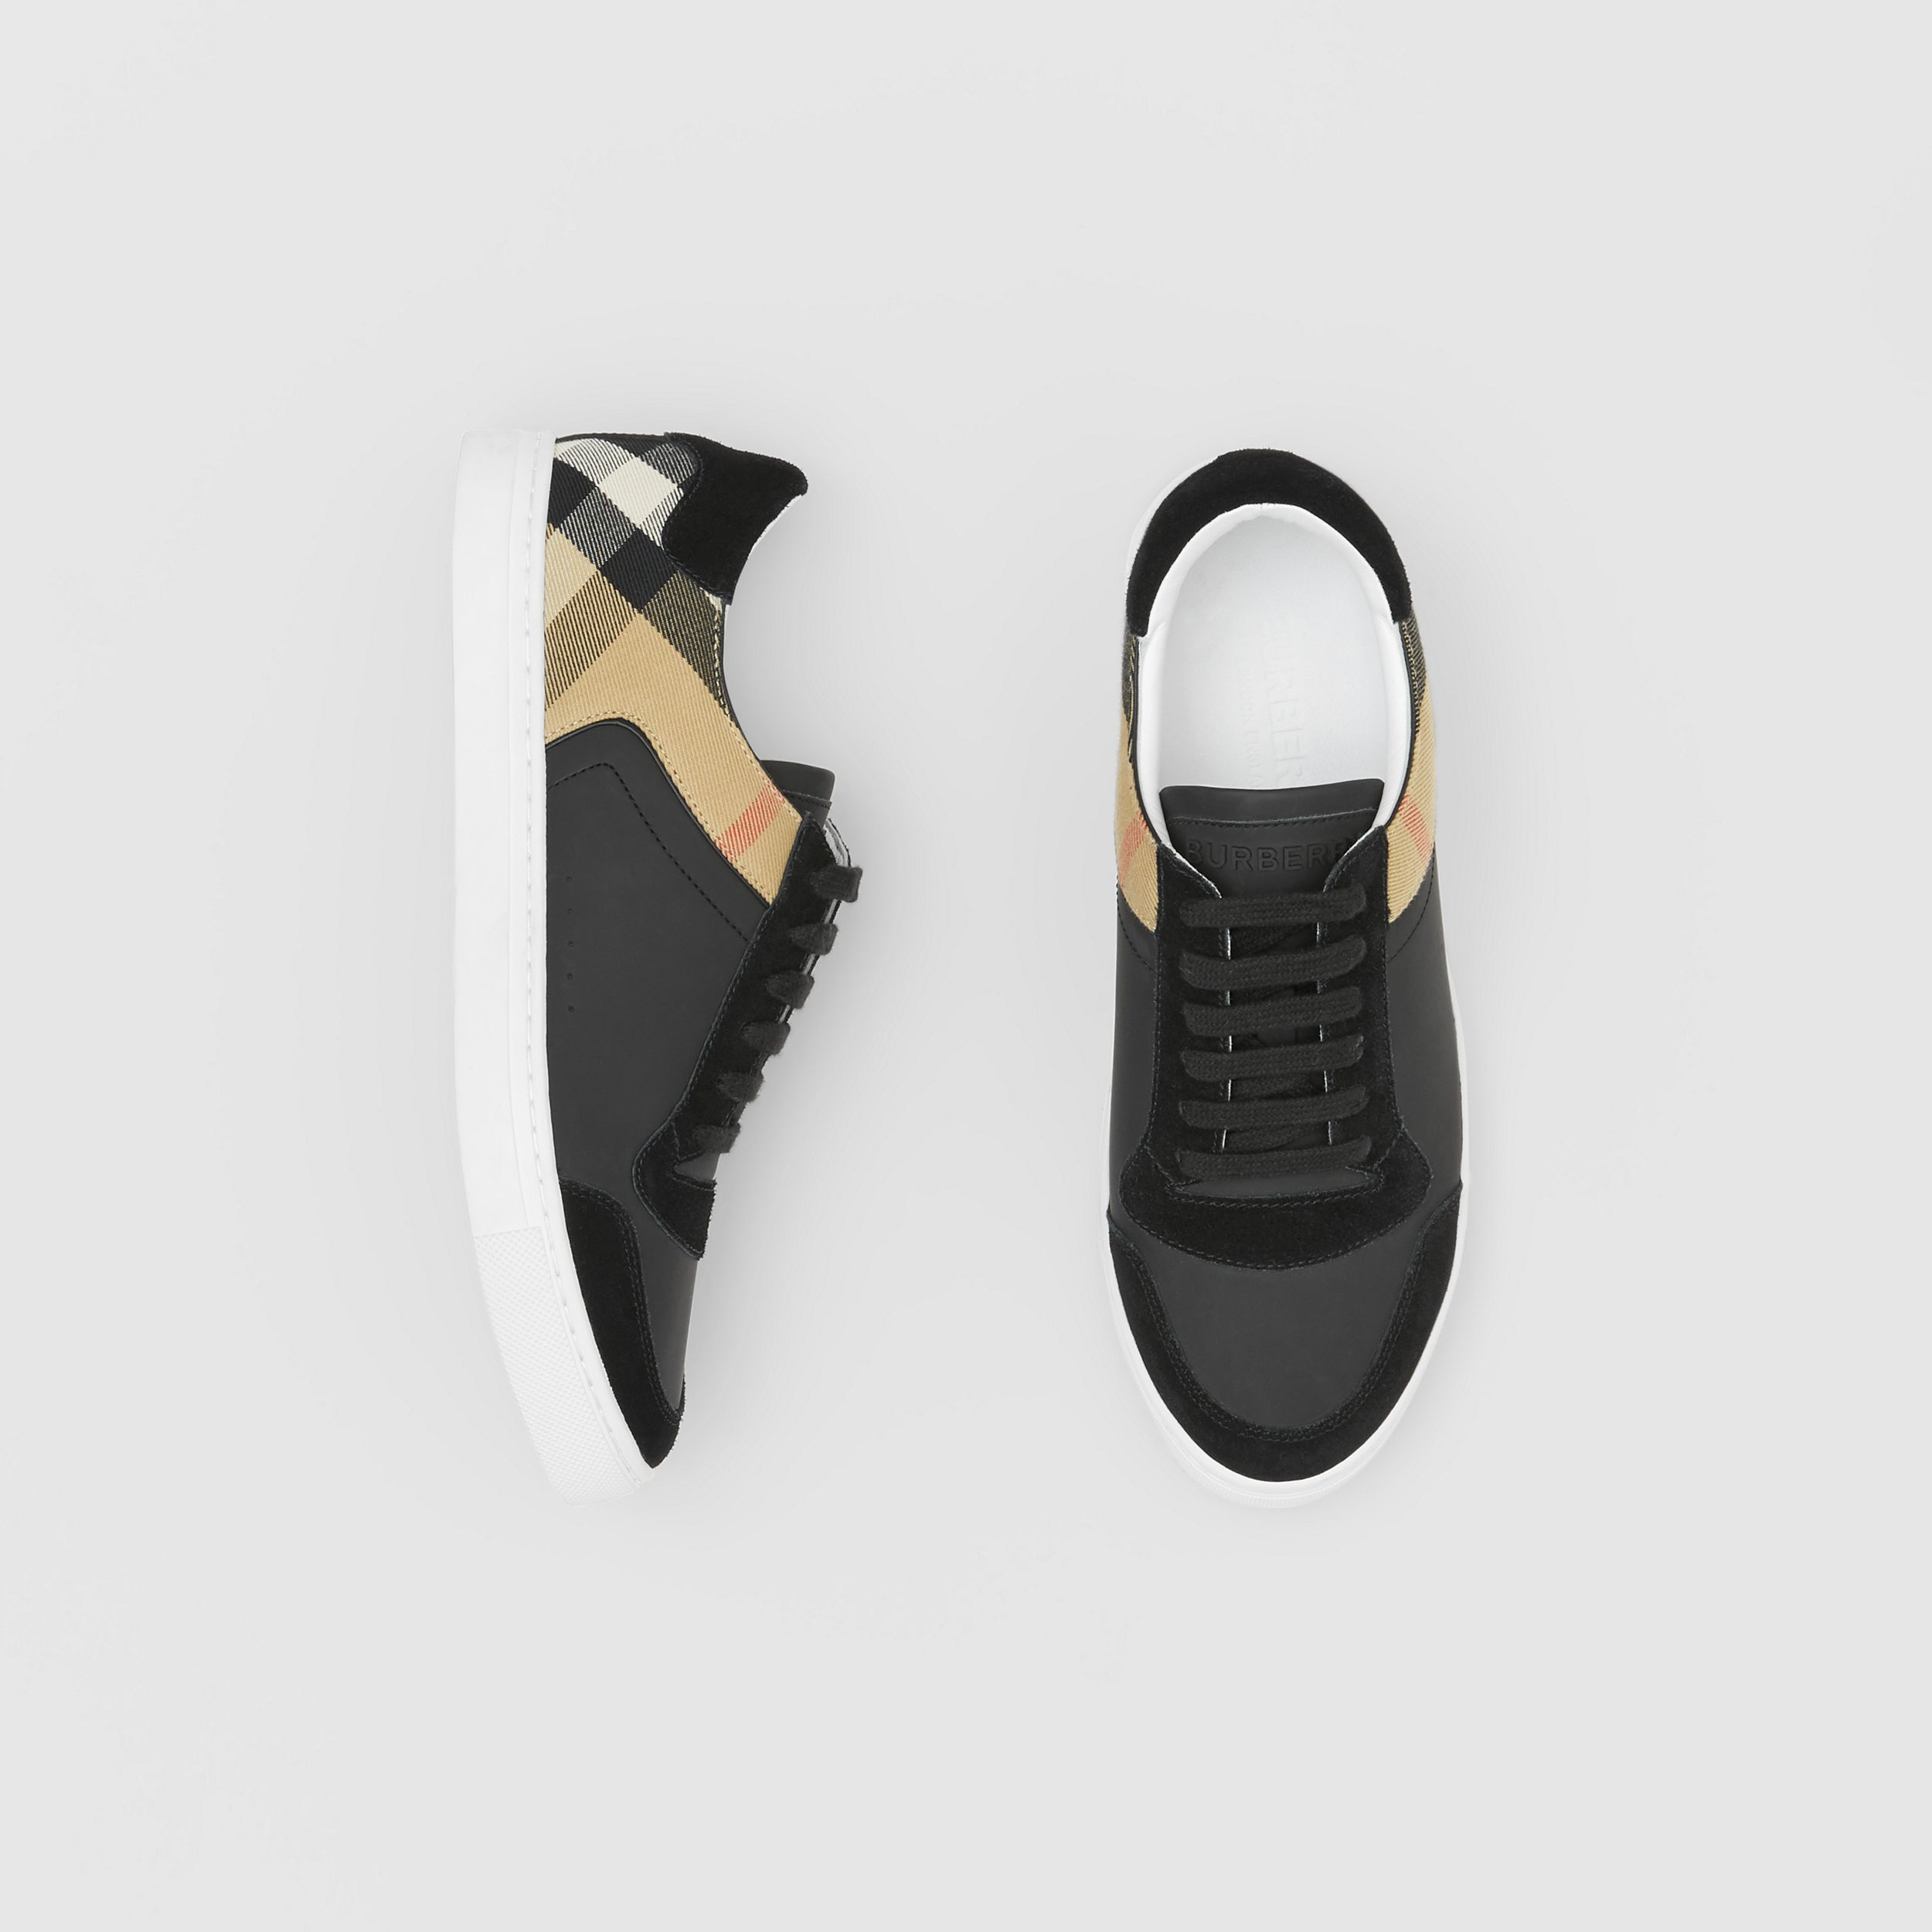 Leather, Suede and House Check Sneakers in Black - Men | Burberry United States - 1